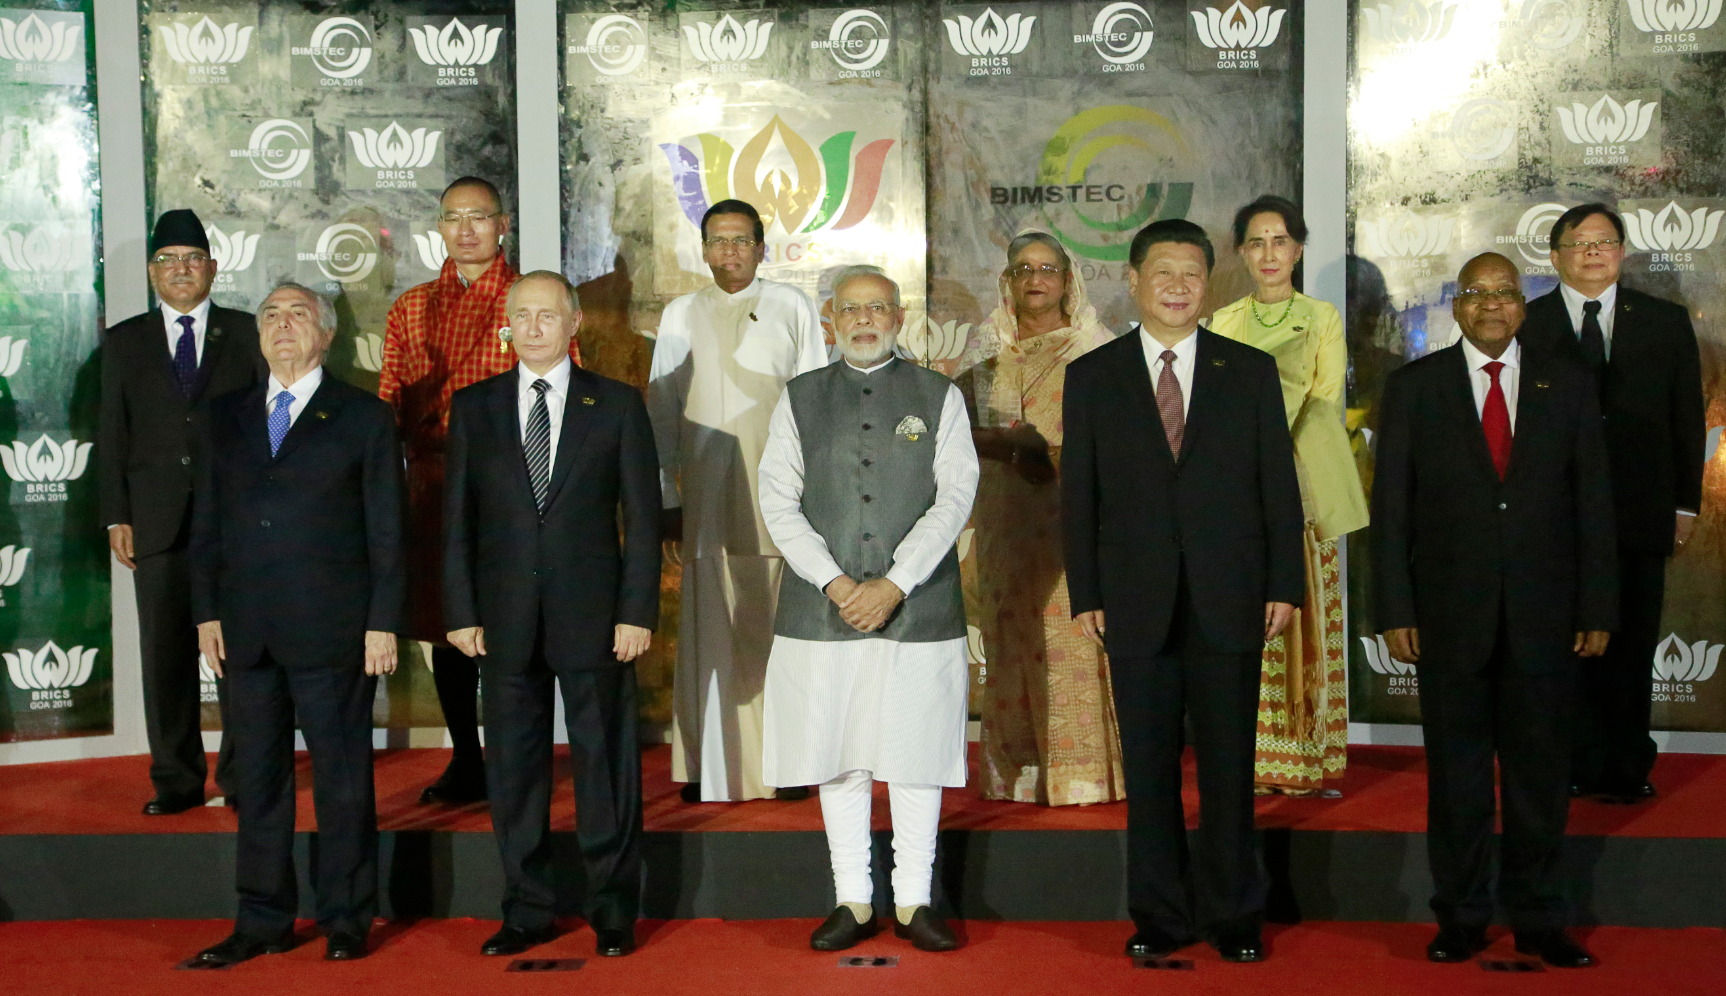 BRICS and BIMSTEC leaders in Goa.